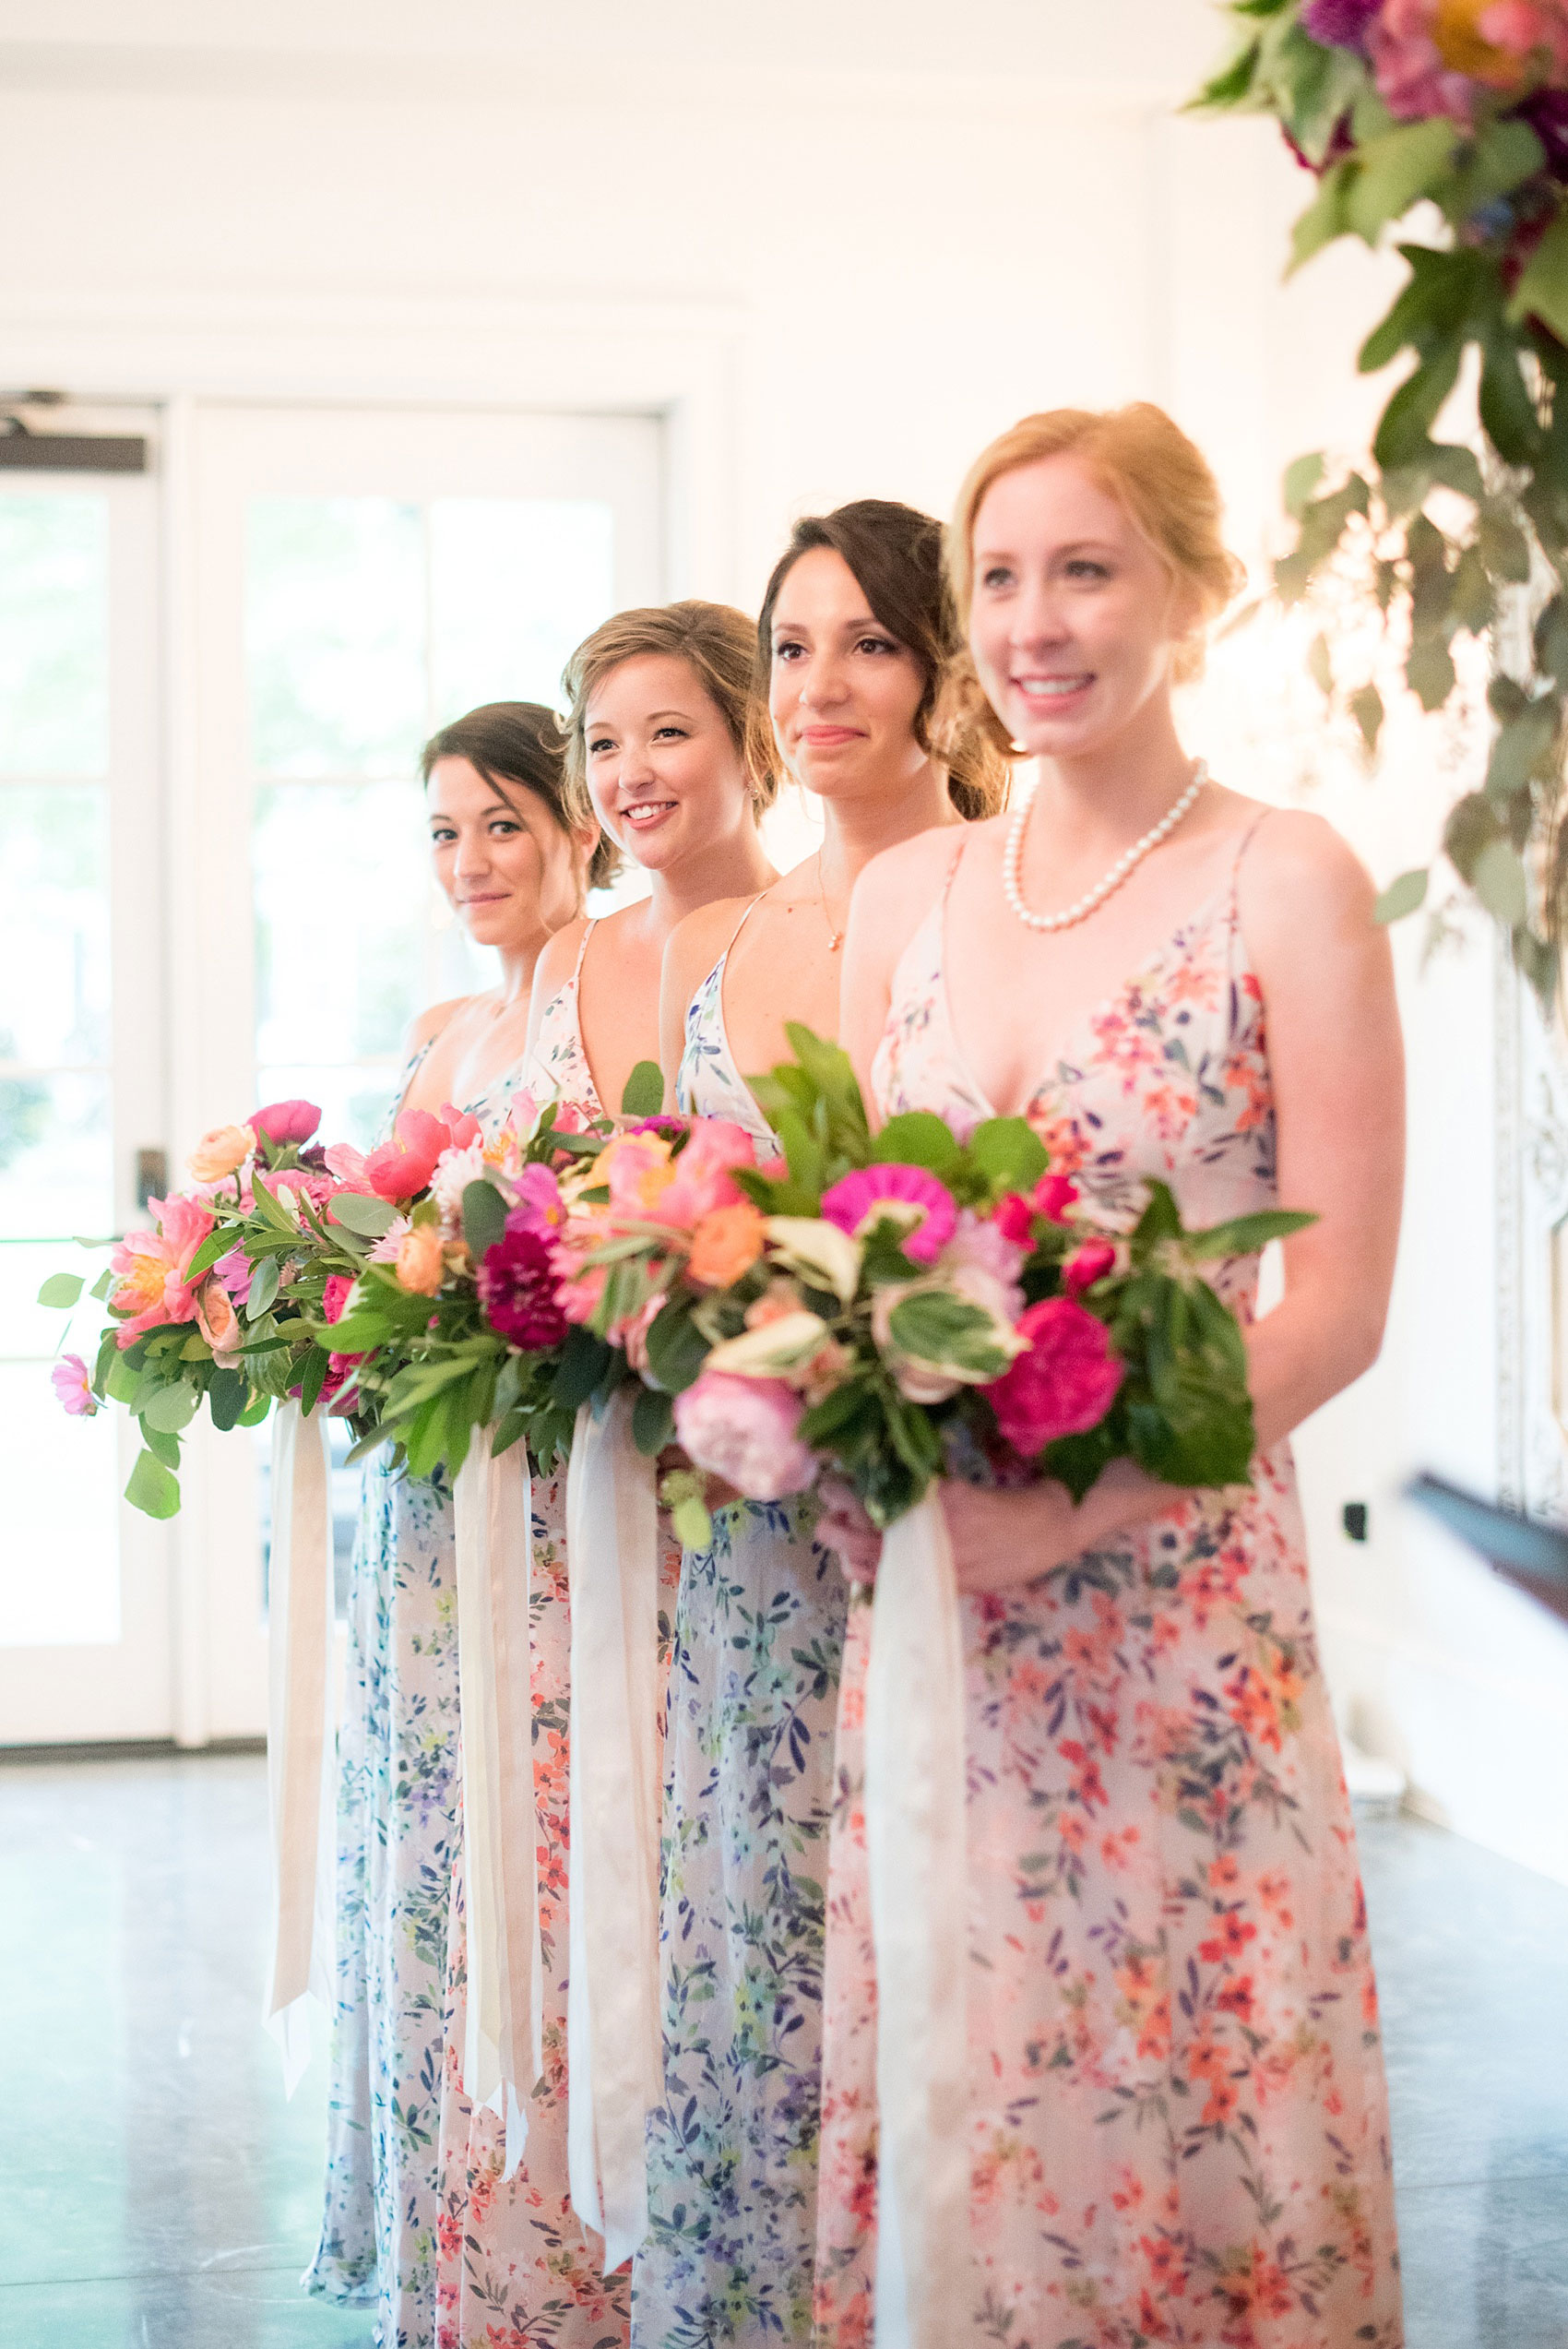 Mikkel Paige Photography wedding photos at The Merrimon-Wynne House in downtown Raleigh. The bridesmaids during the ceremony, pictured in floral maxi dresses with colorful bouquets.